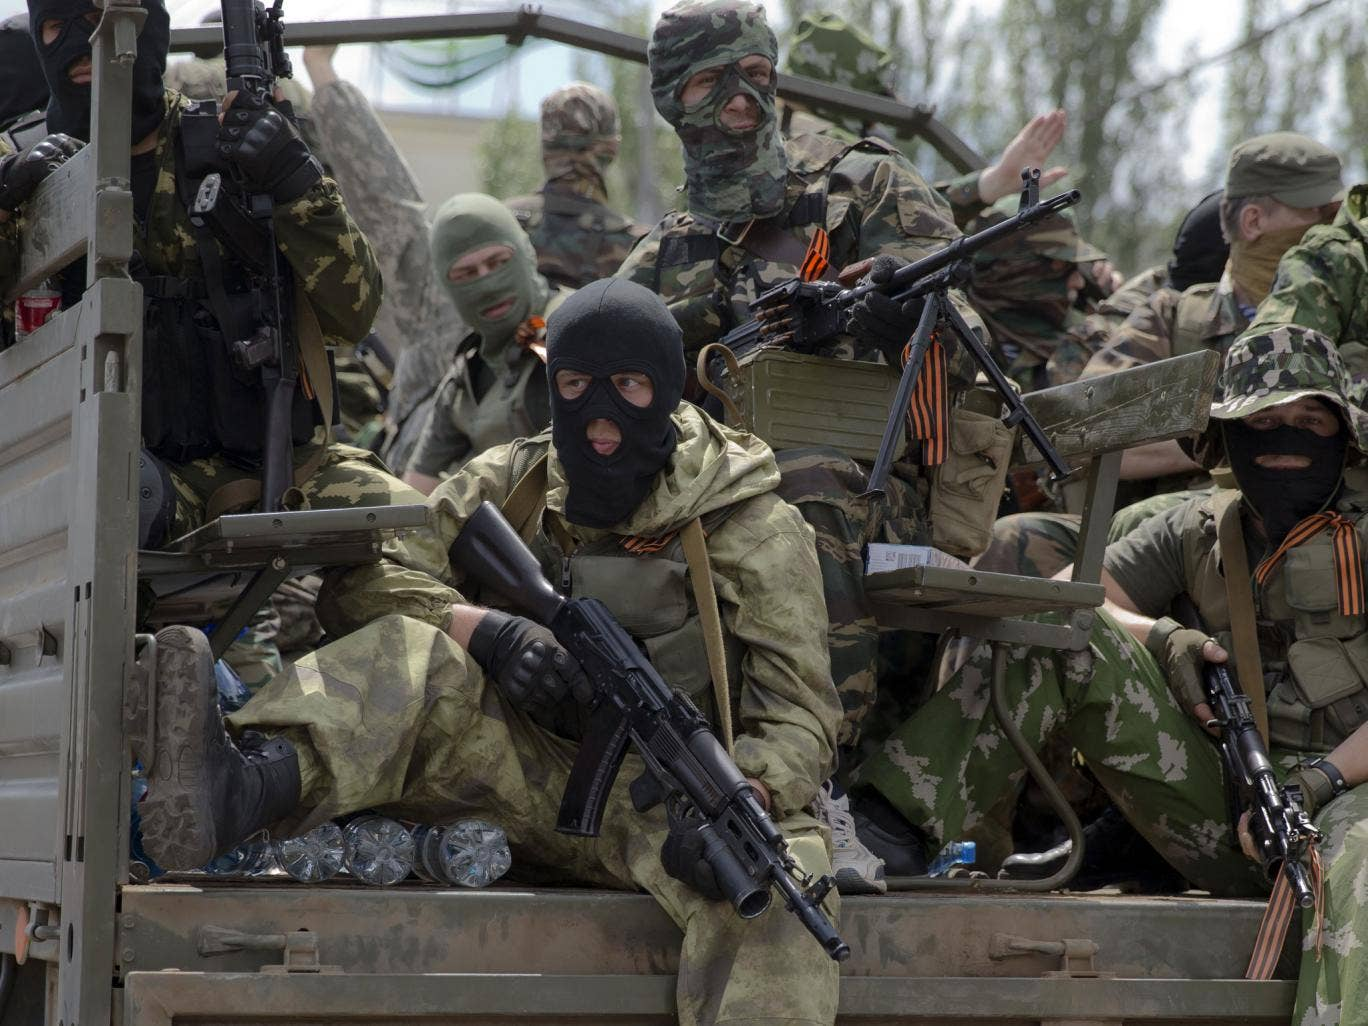 Pro-Russians ride on a truck in Donetsk. A convoy of an armored personnel carrier and seven trucks carrying several hundred heavily armed men drove through central Donetsk and gunmen got out of the trucks, stood to attention and gave shots in the air in j